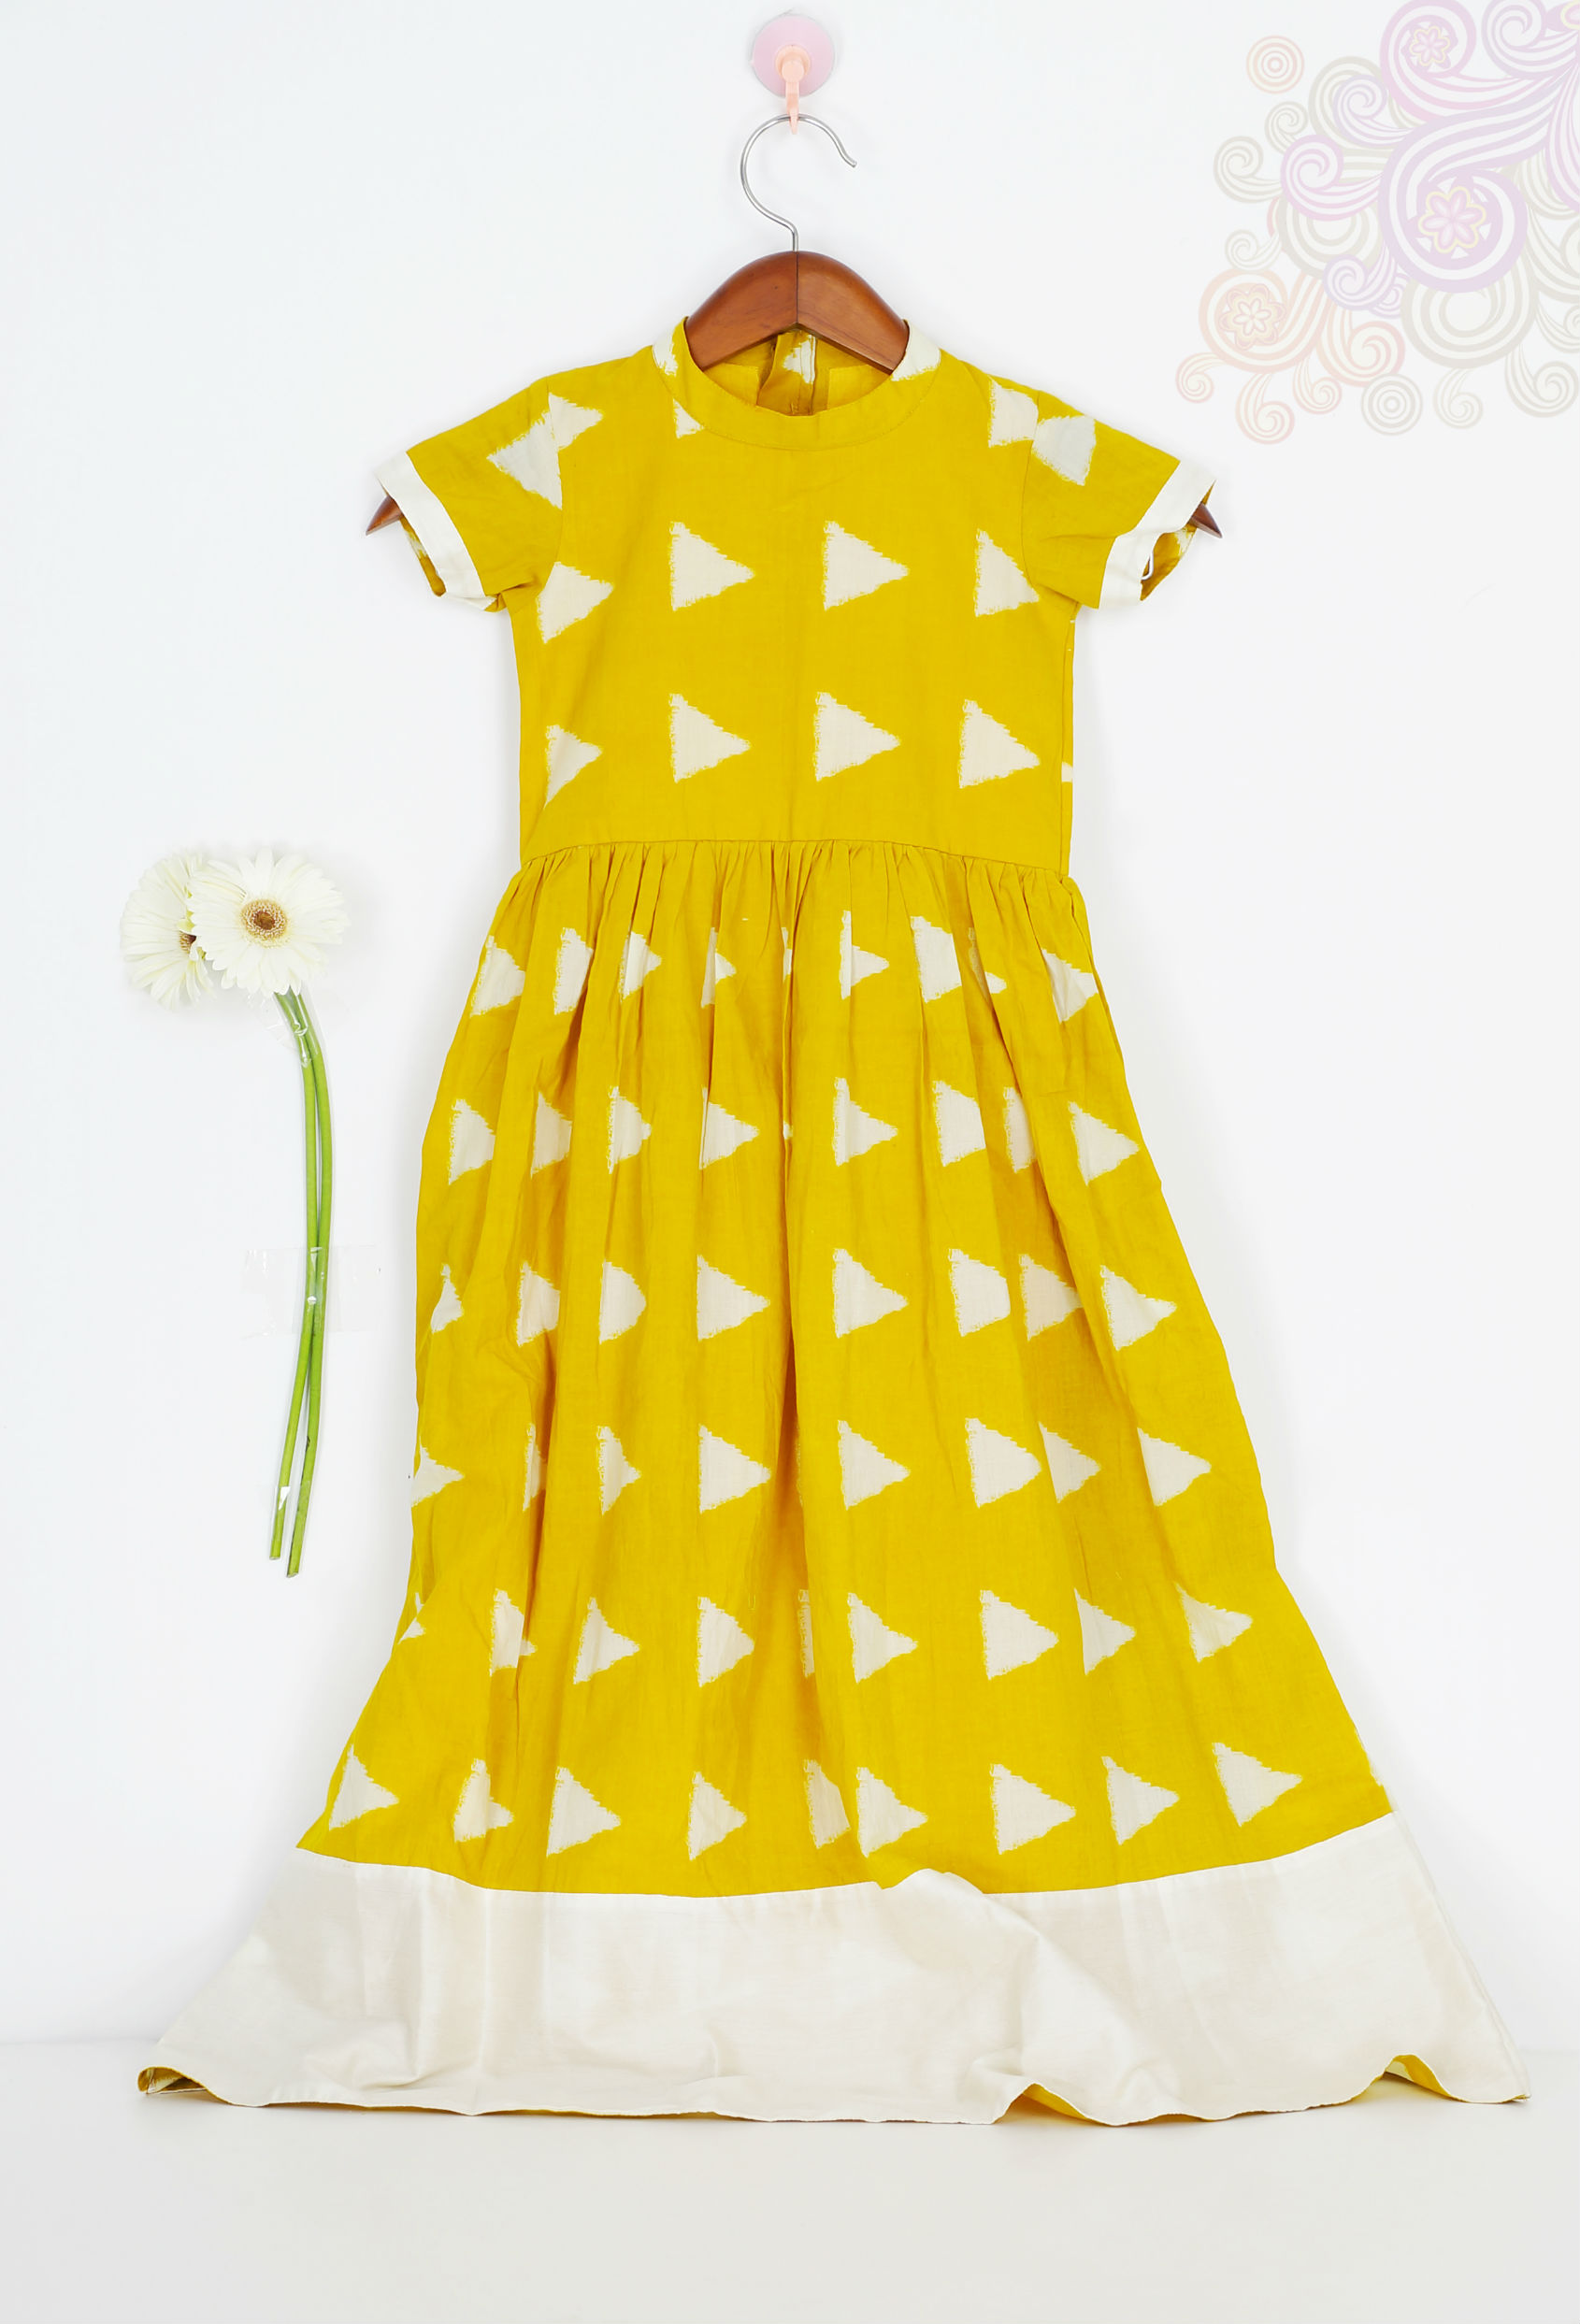 Mini yellow block dress